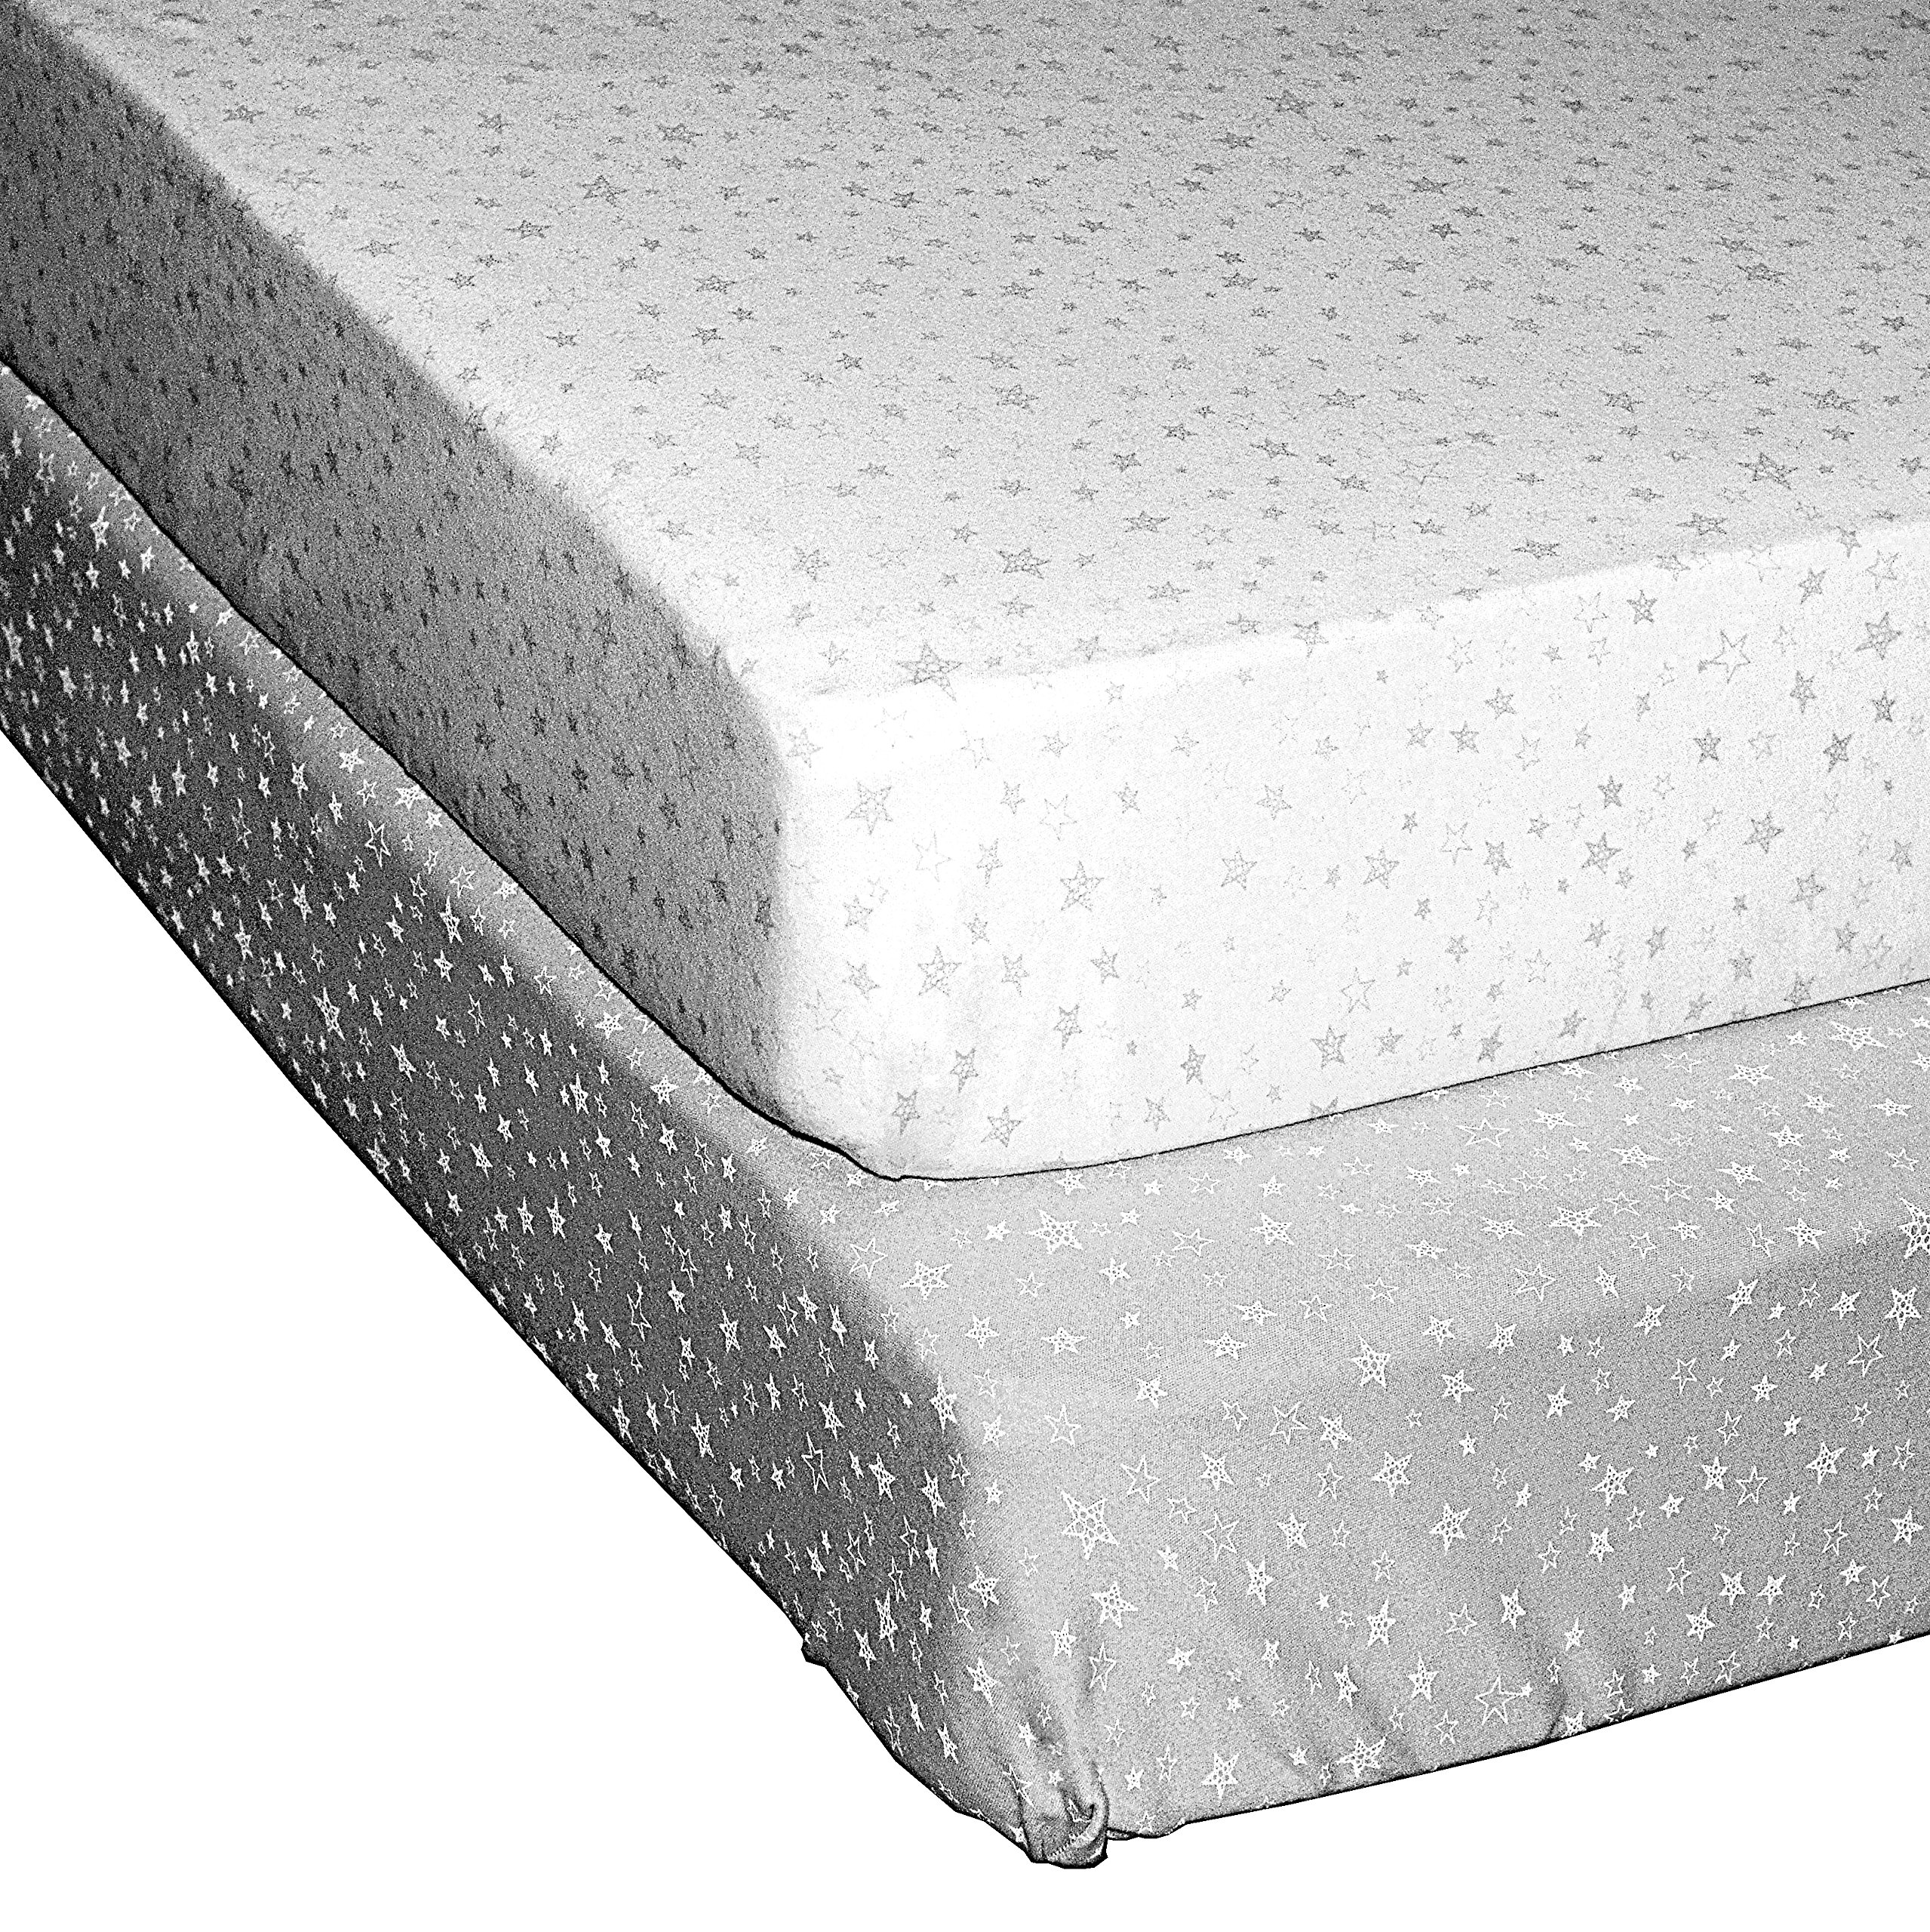 100% Organic Jersey Cotton Fitted Crib Sheets, 100% GOTS Certified, 2 Pack, White/Grey Star, Unisex Design, by Cobei Homegoods by Cobei Homegoods